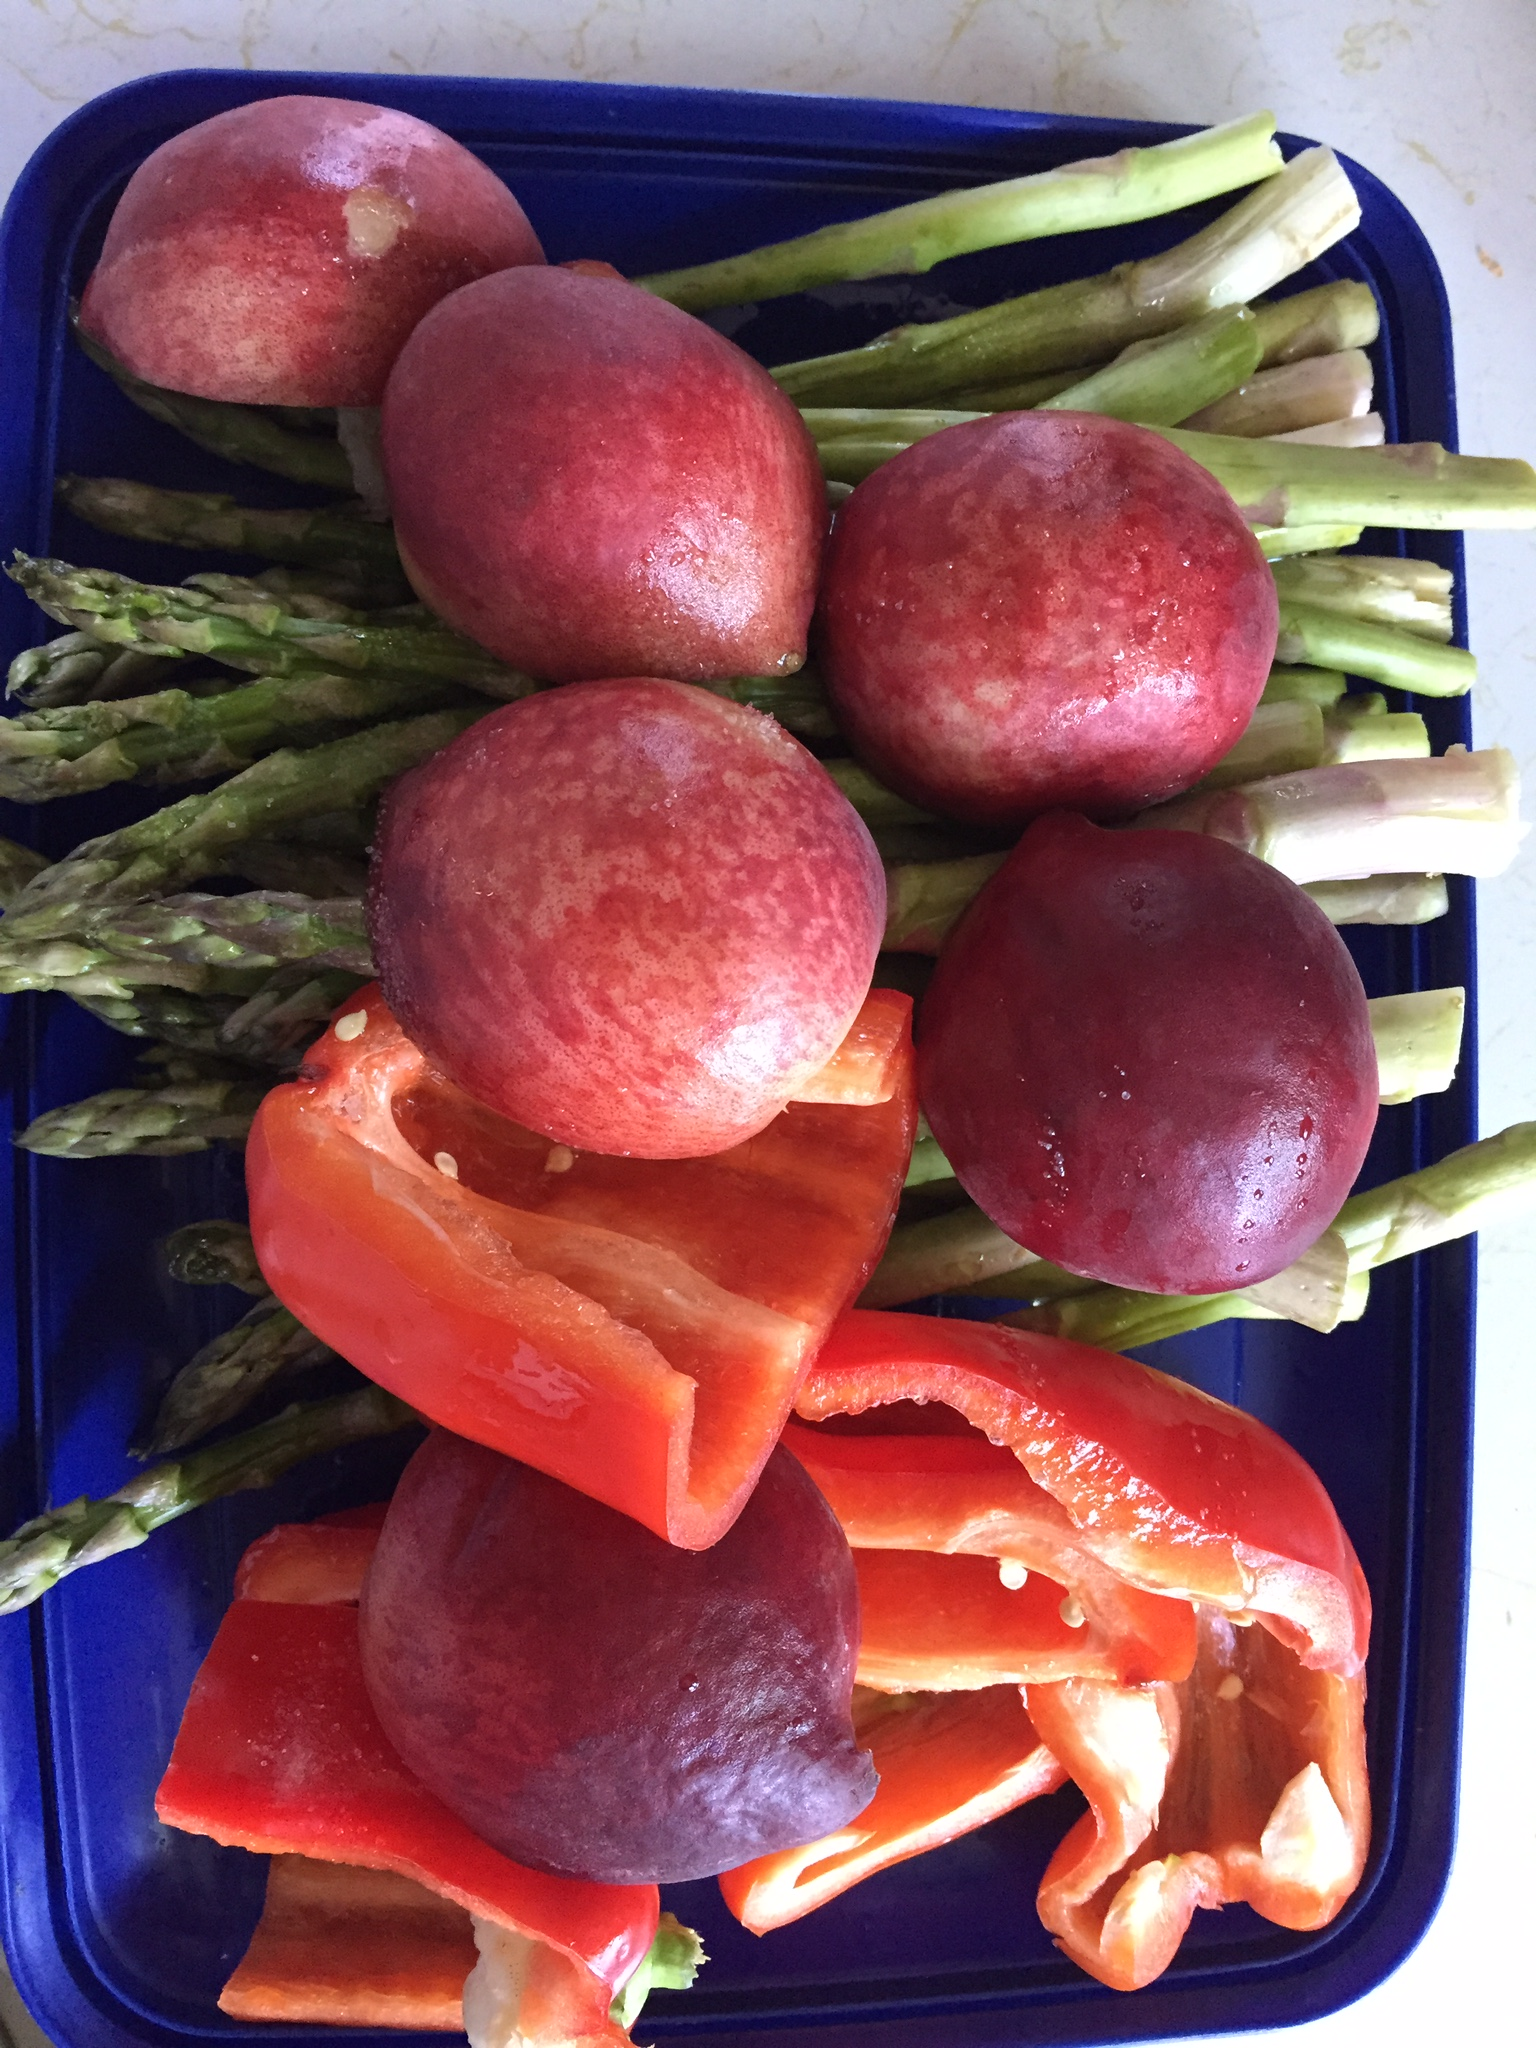 Vegetables and Peaches Ready for the Grill